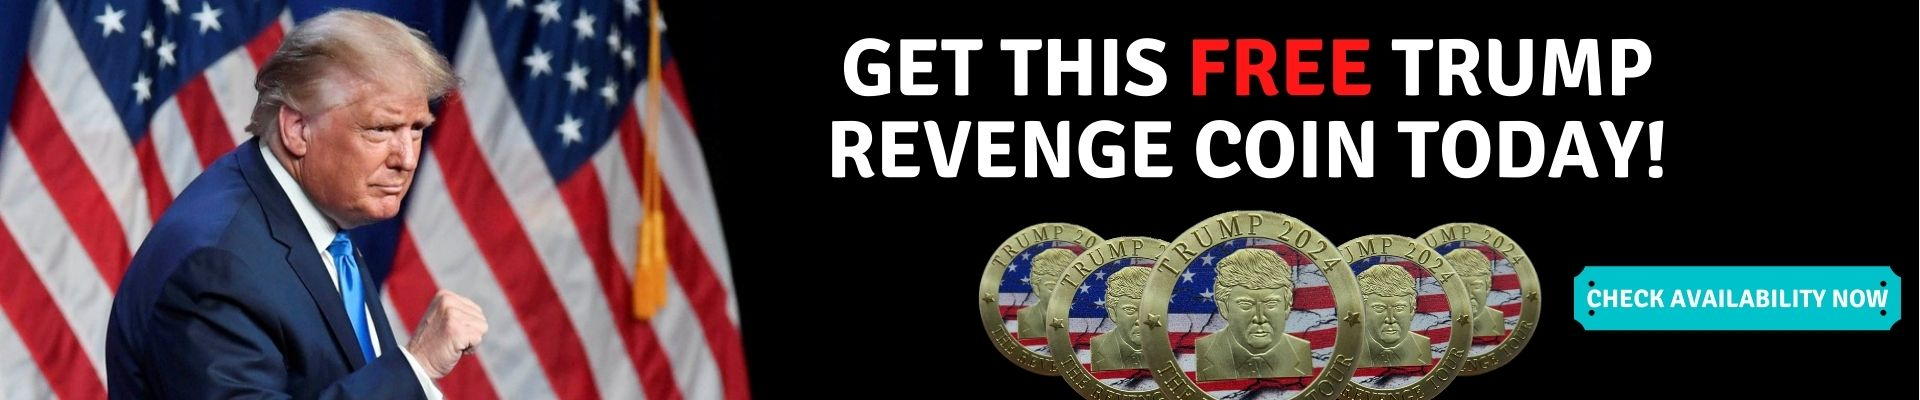 ET THIS FREE TRUMP REVENGE COIN TODAY!